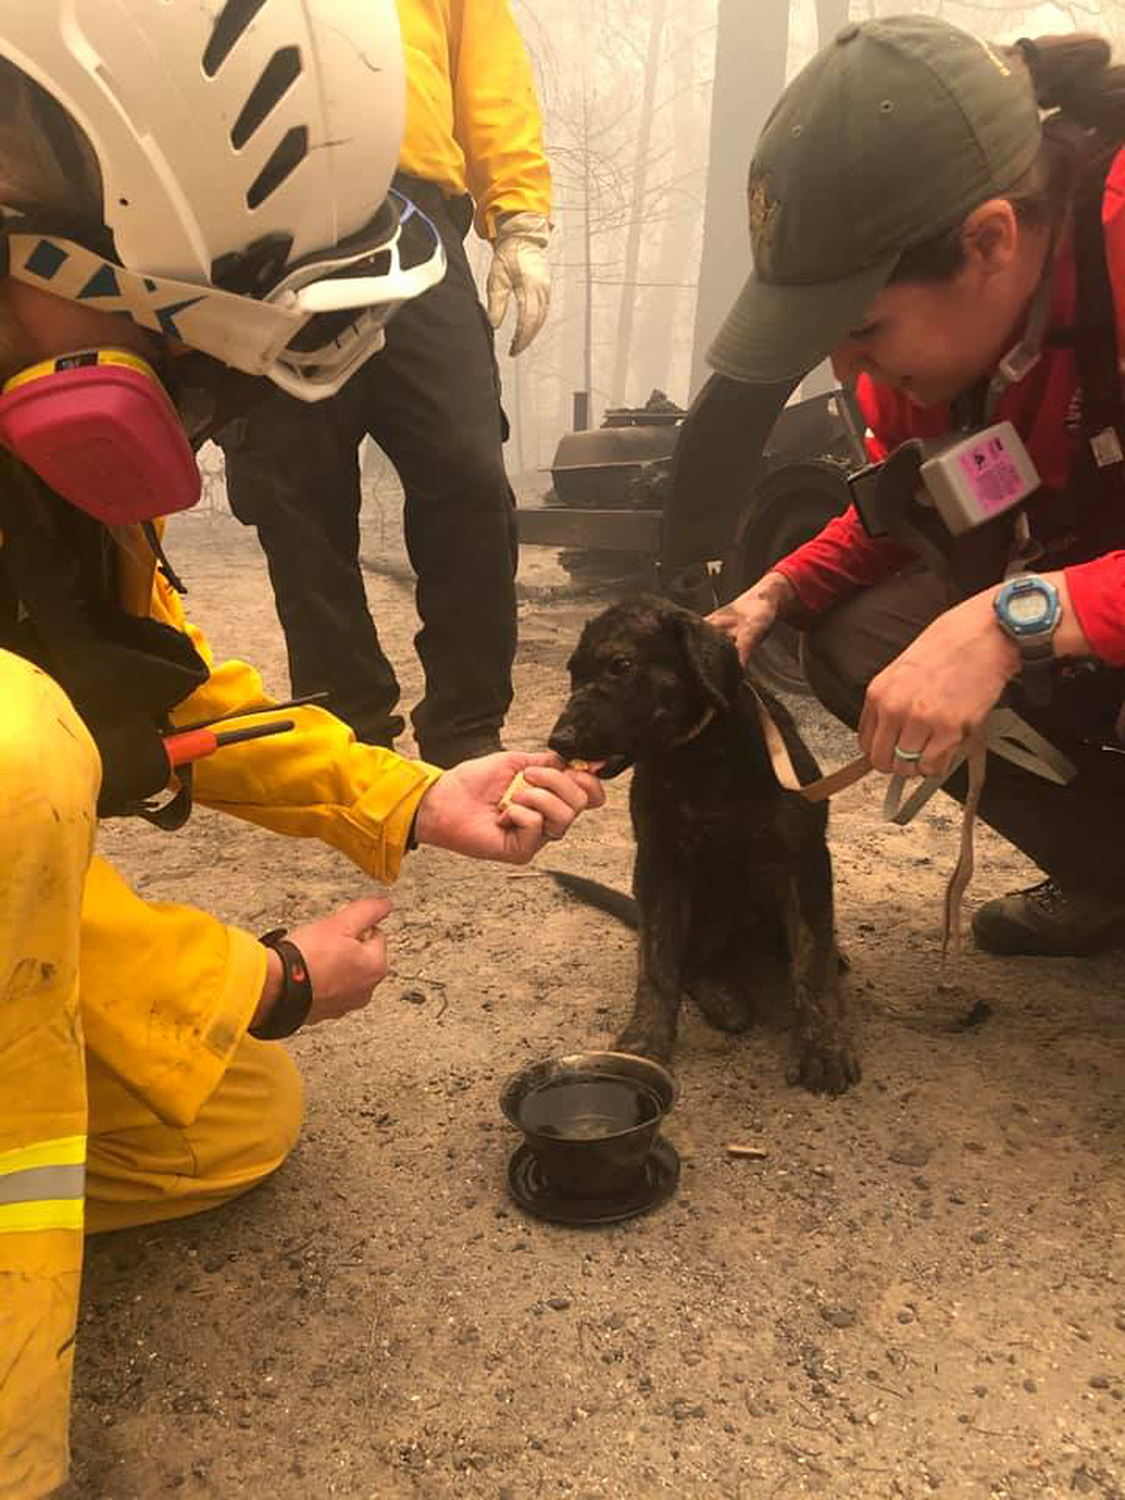 Puppy rescued from fires